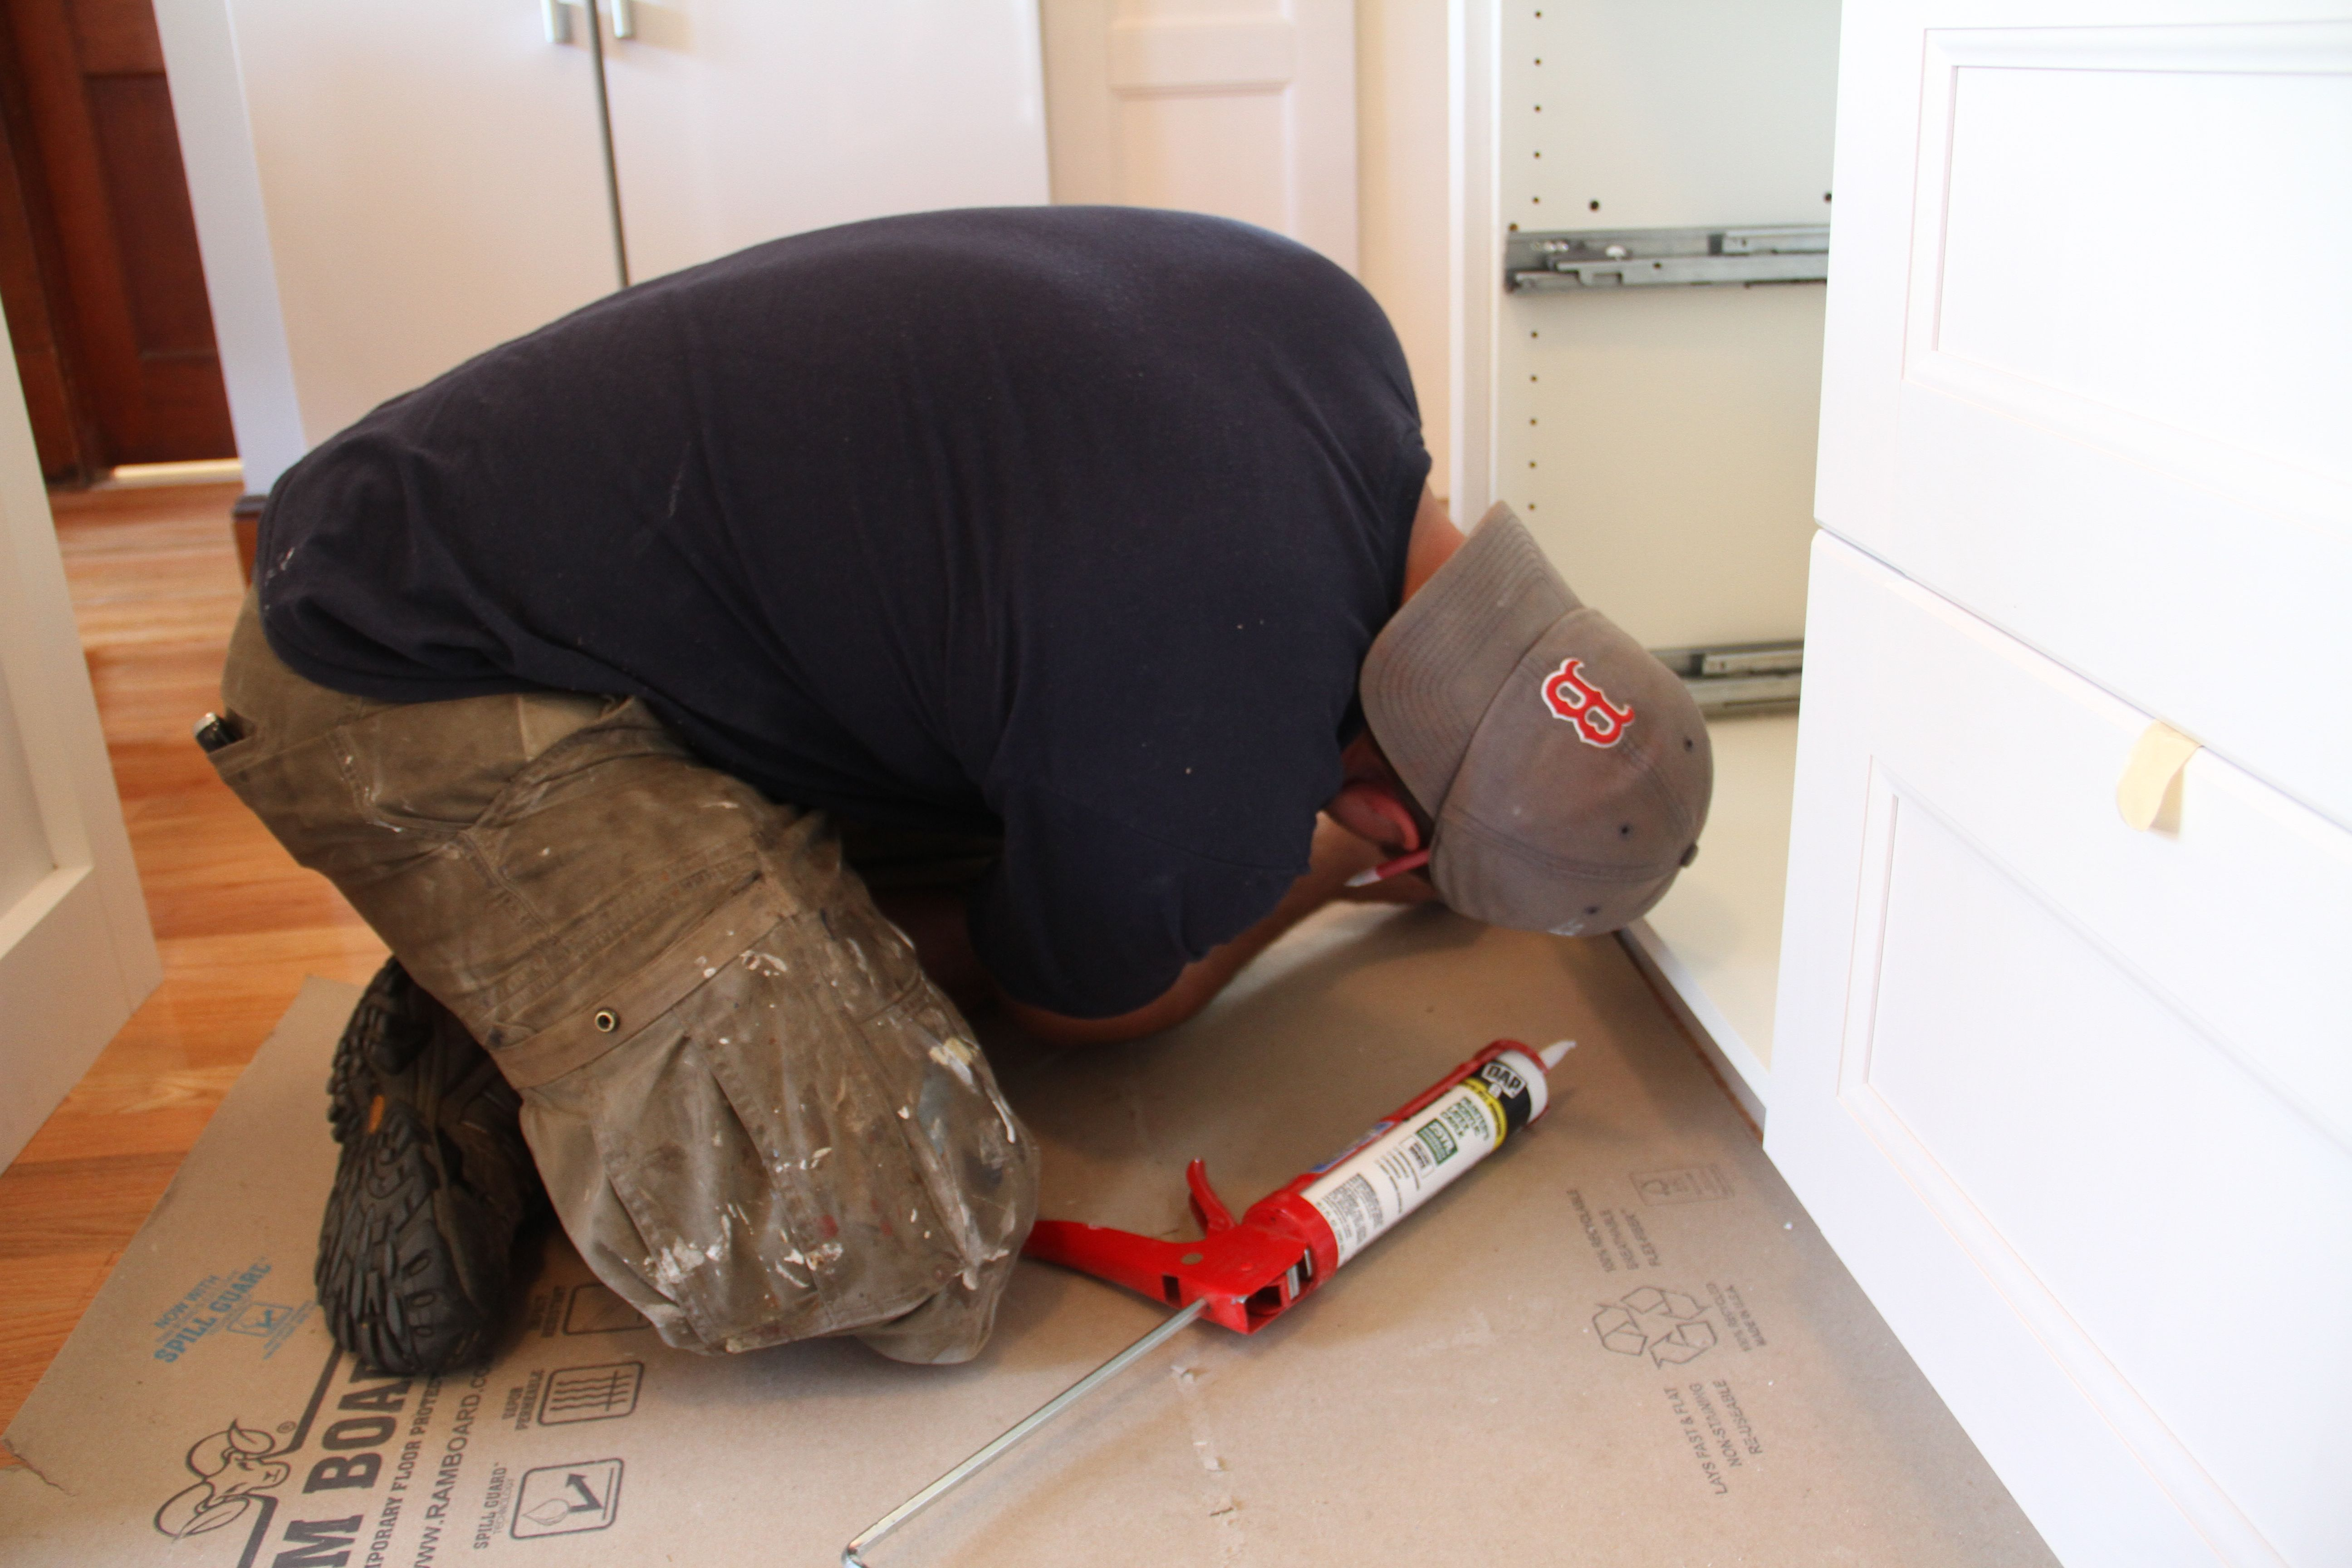 Dave contorted himself for the love of caulking.